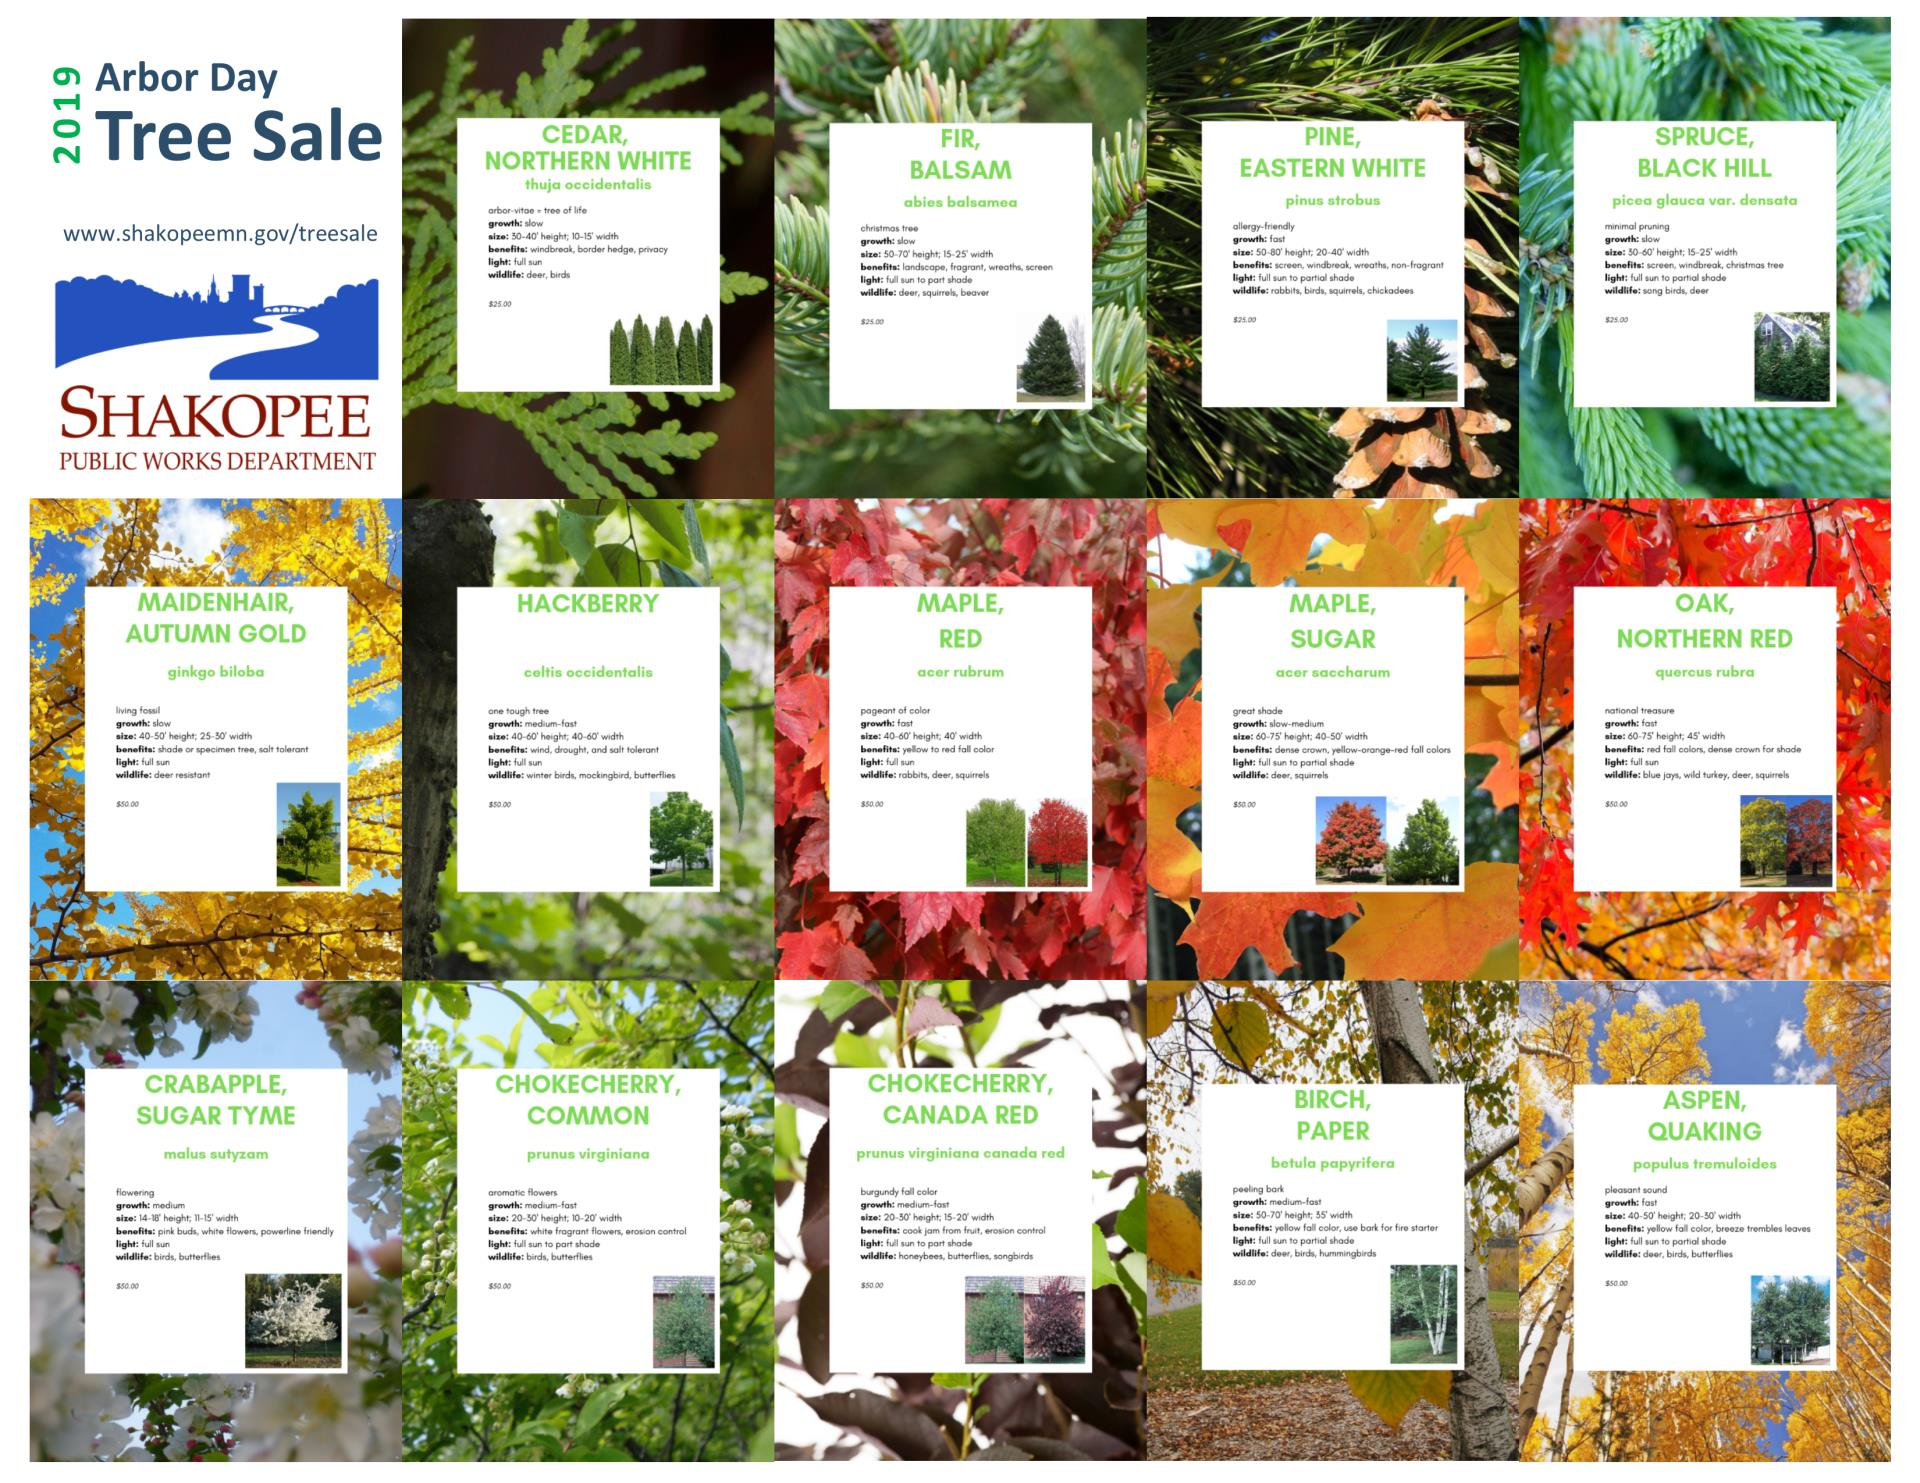 Tree Sale Flyer one-page